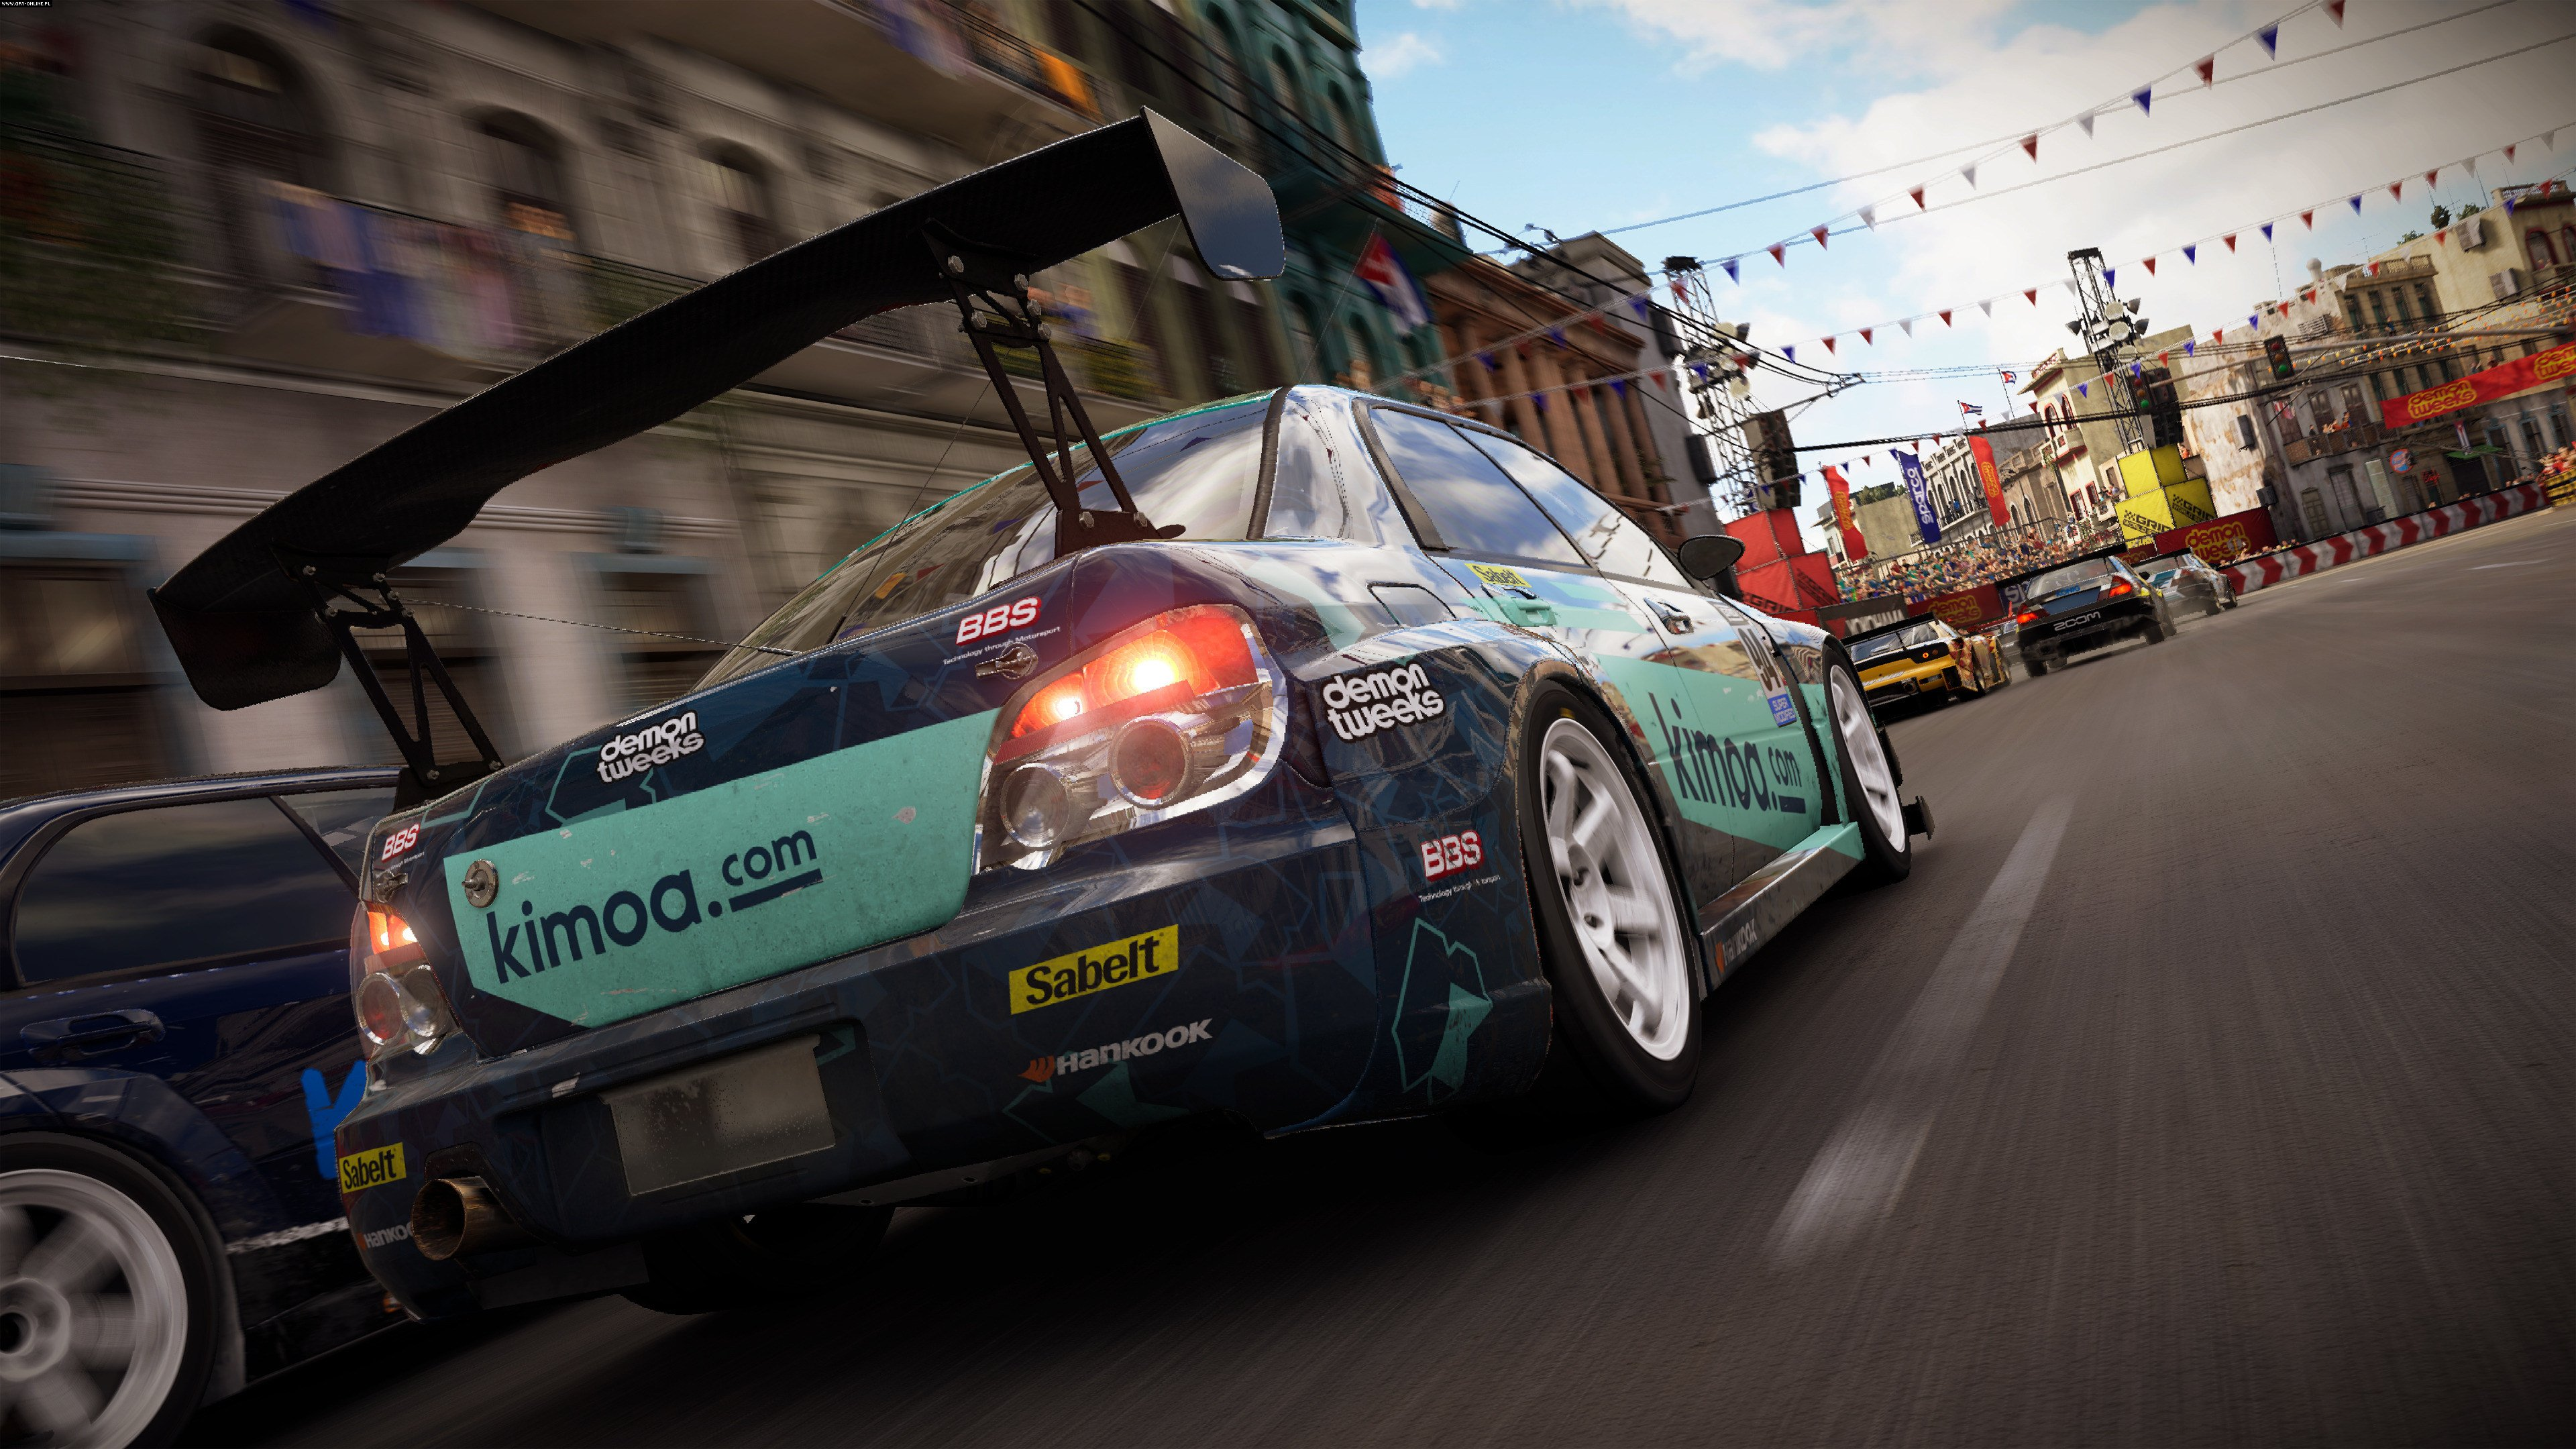 GRID PC, PS4, XONE Games Image 68/85, Codemasters Software